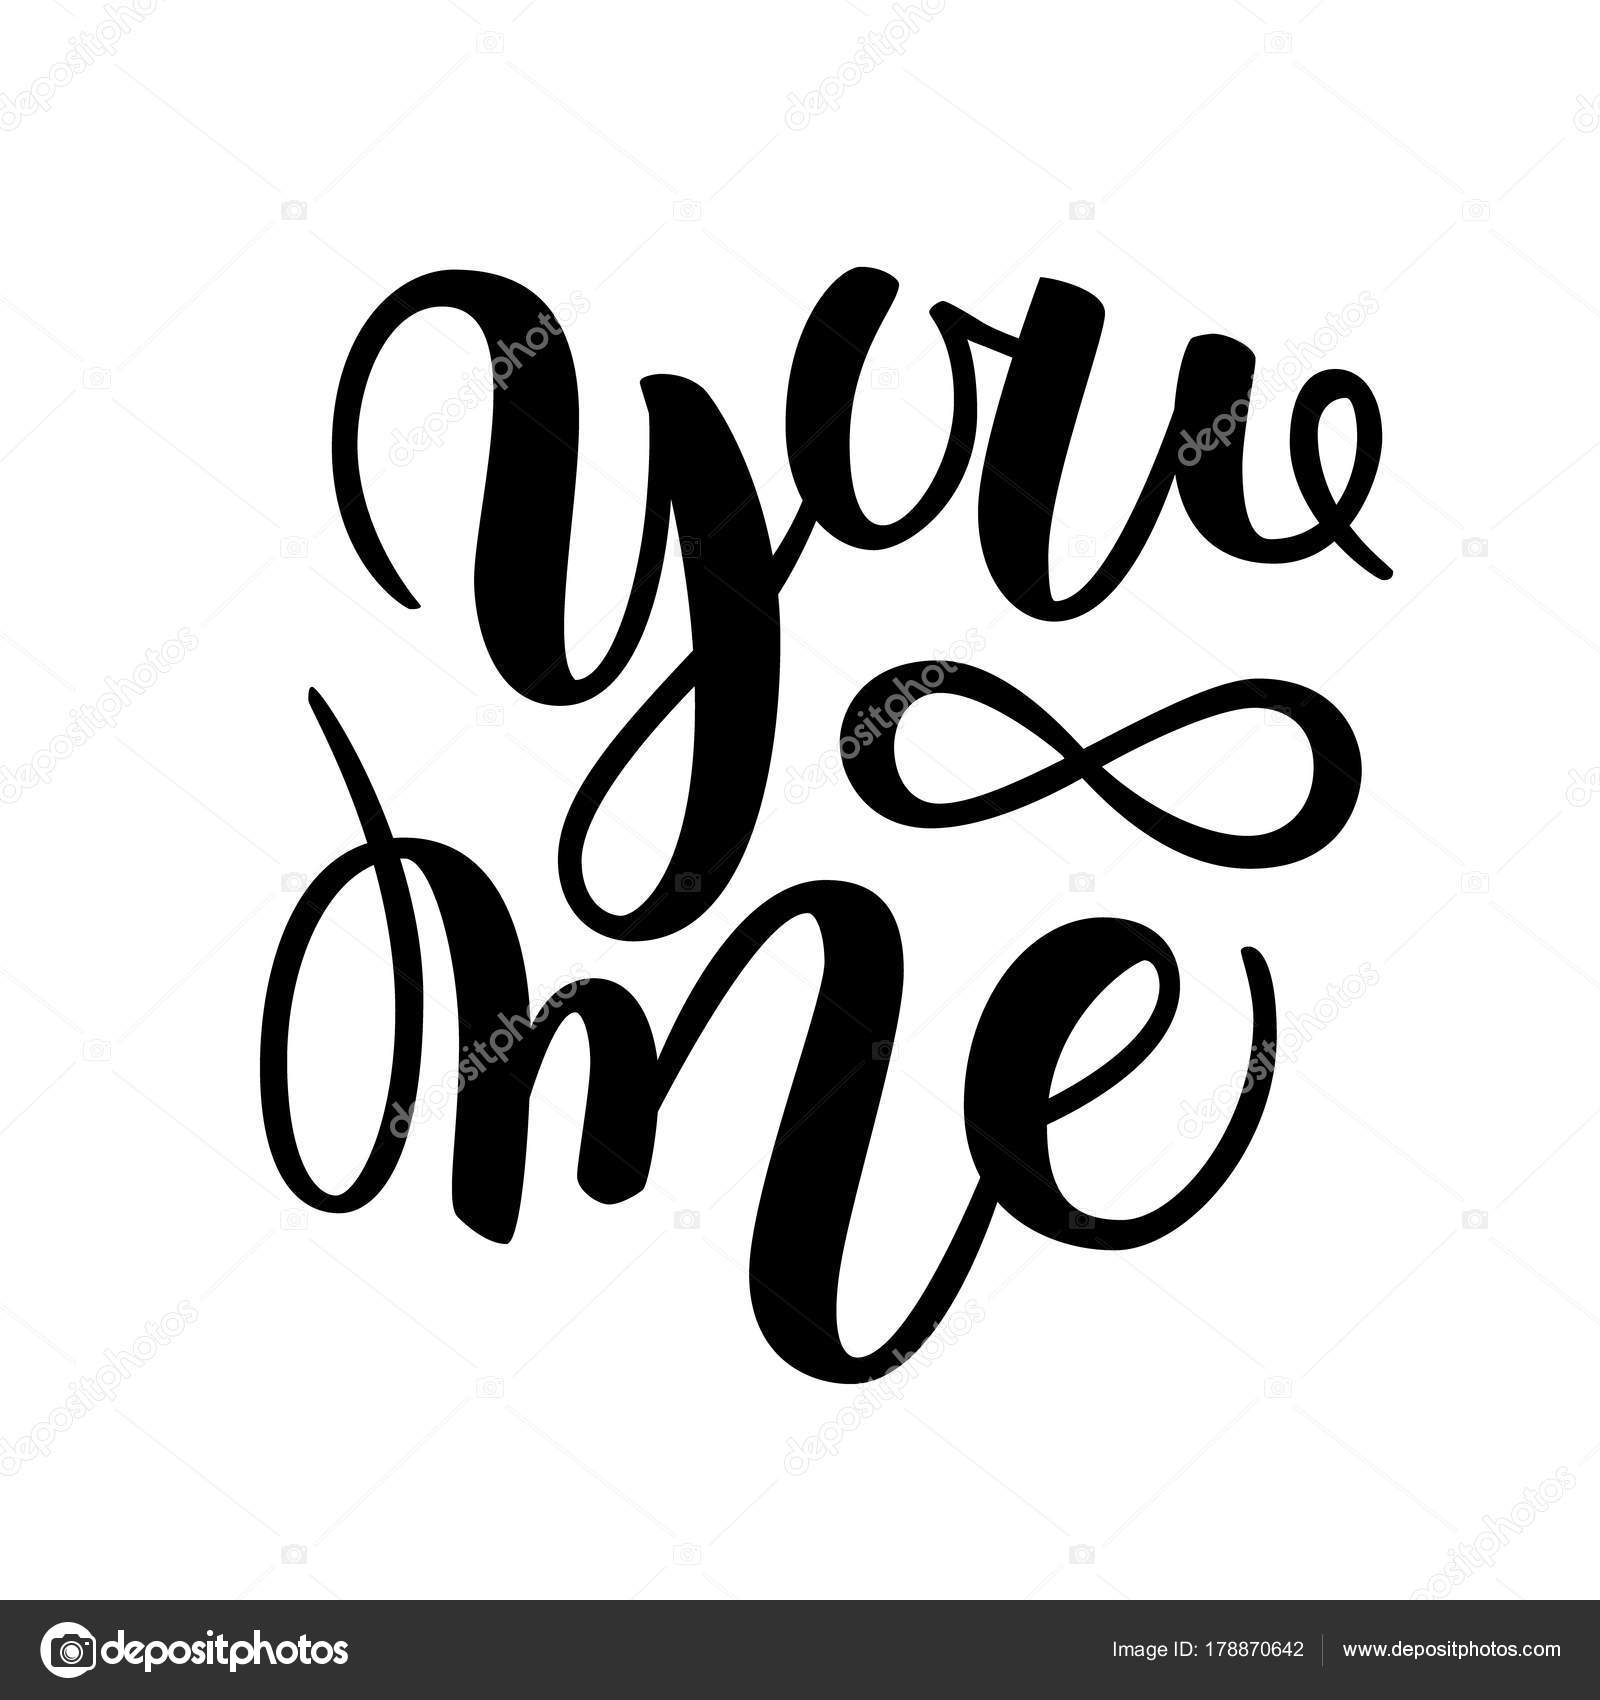 You And Me Modern Calligraphy Lettering Design For Typography Poster Or T Shirt